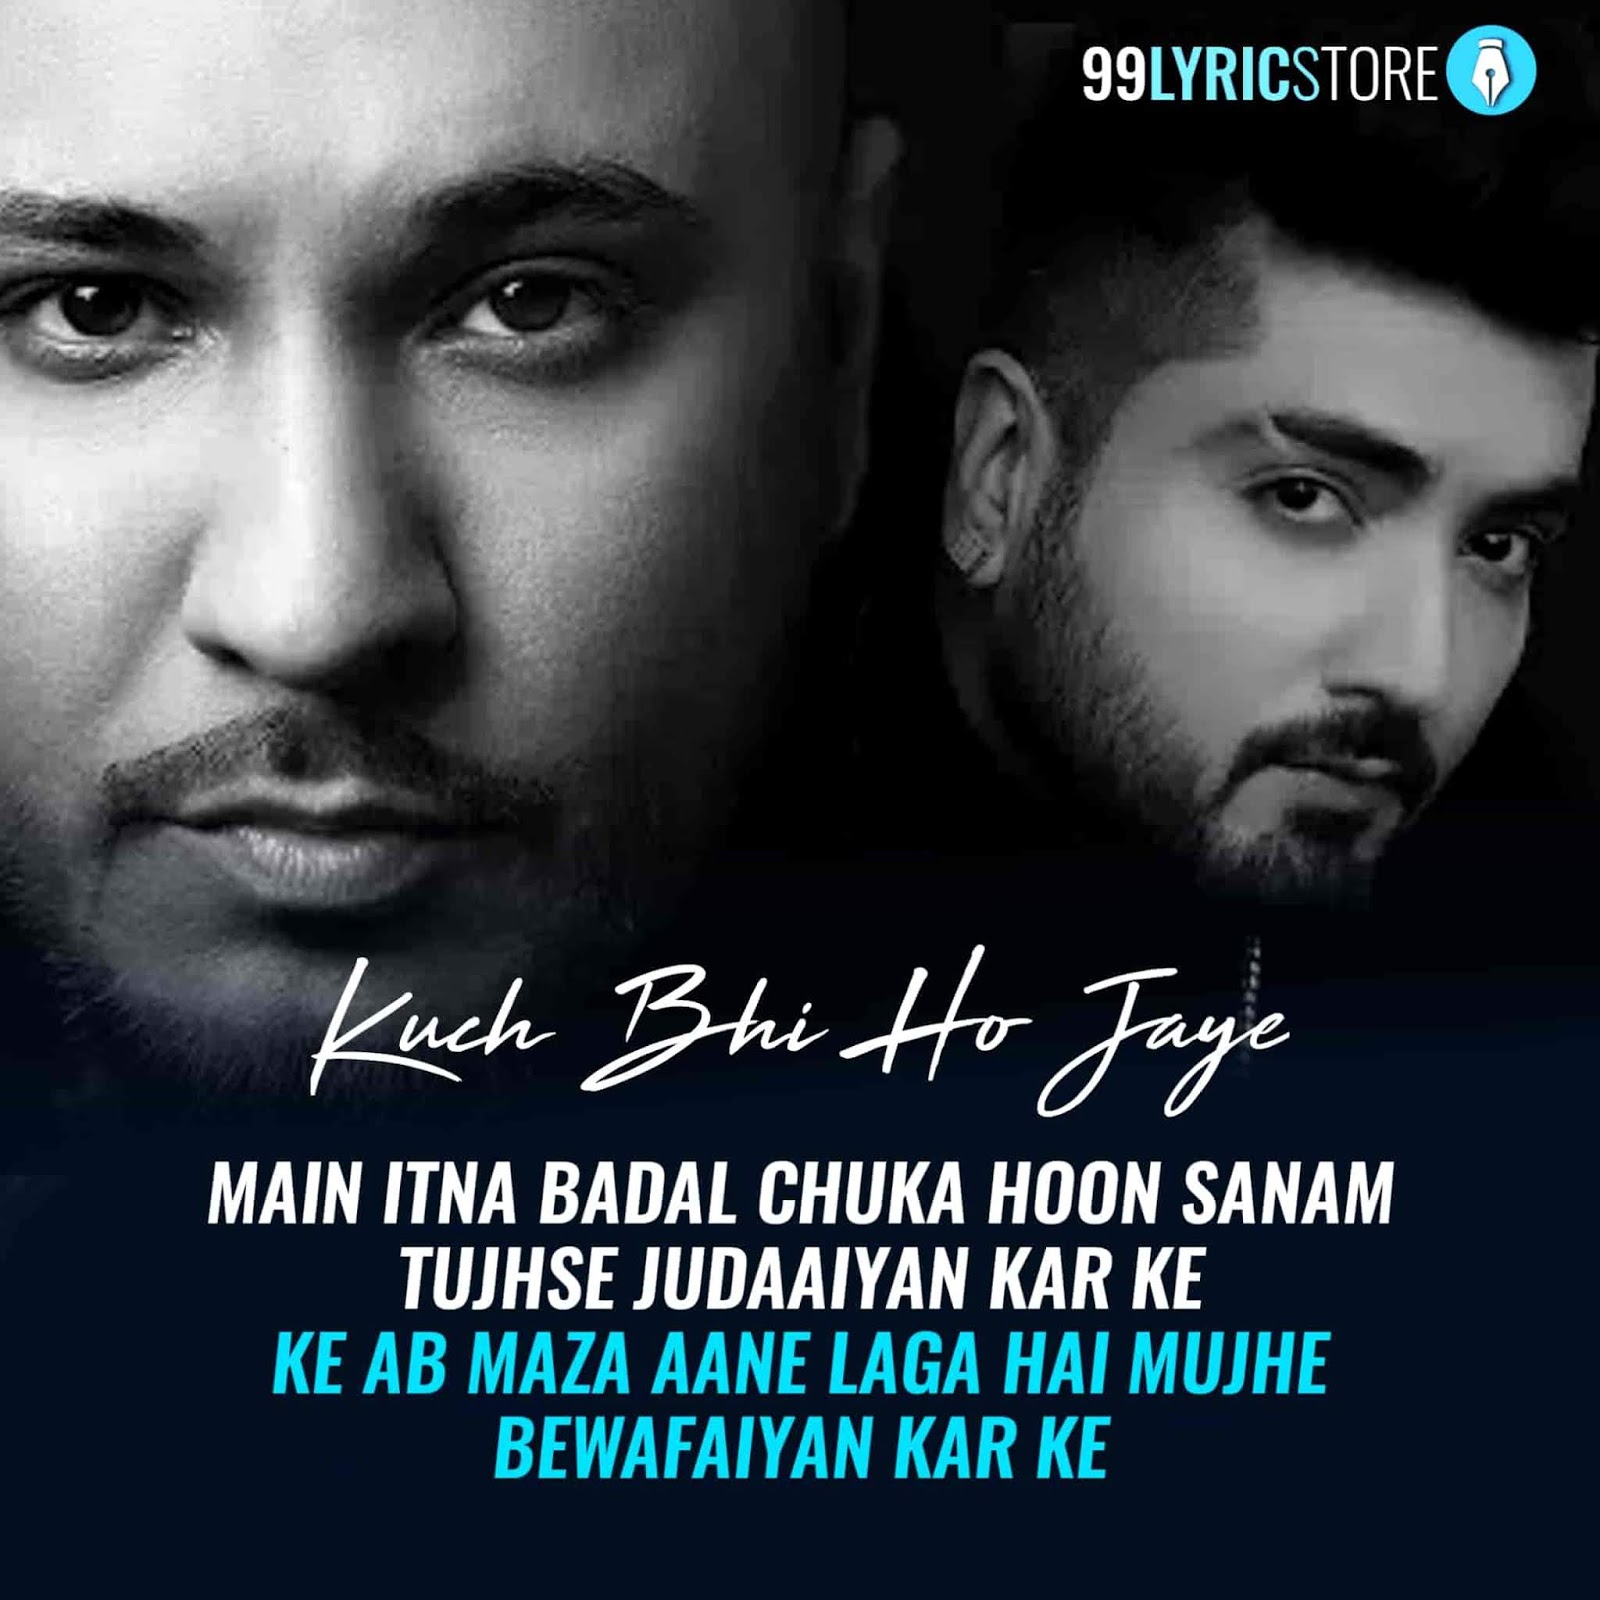 Kuch Bhi Ho Jaye Lyrics :- Hit songs maker duo B Praak and Jaani back again with a beautiful full of emotions song which is titled Kuch Bhi Ho Jaye sung and composer by B Praak. This song audio only released now but after hit this song video will release very soon. This paniful song Kuch Bhi Ho Jaye has penned by Jaani. This song lyrical video has created by Aman Kalsi. This song is presented by Desi Melodies label.